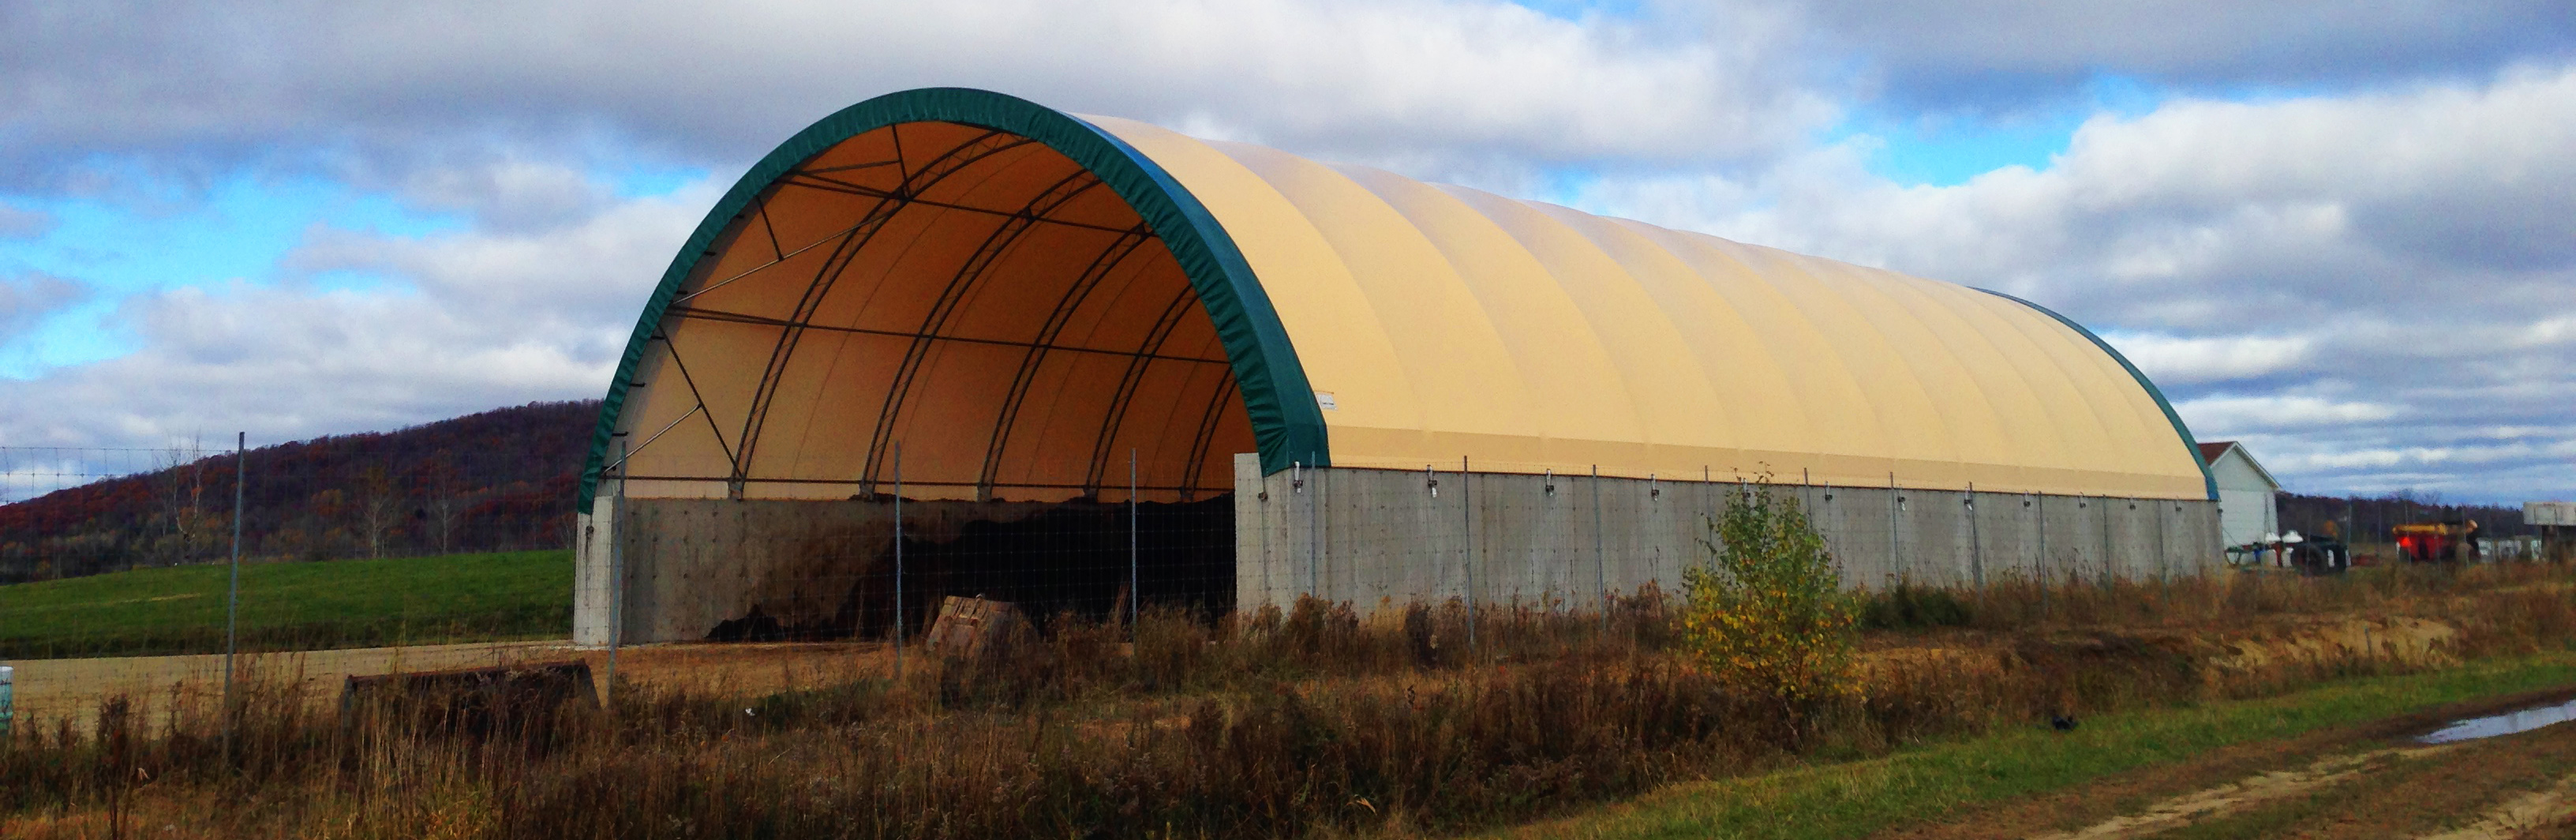 Storage Solutions | Fabric Covered Storage Buildings | Cover All That Matters to You | Tasco Dome & Storage Solutions | Fabric Covered Storage Buildings | Cover All ...